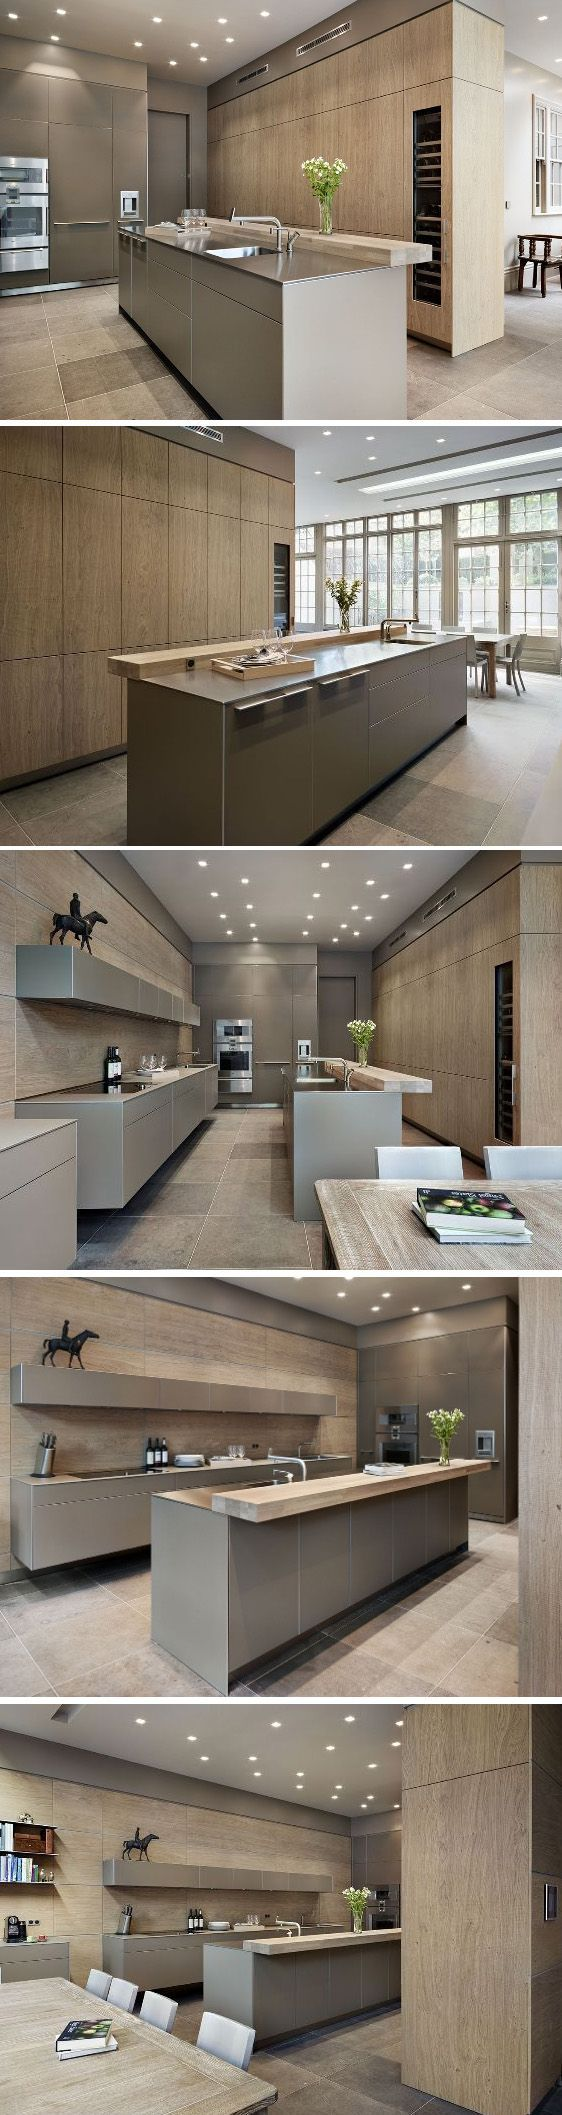 Great interior and kitchen design..........